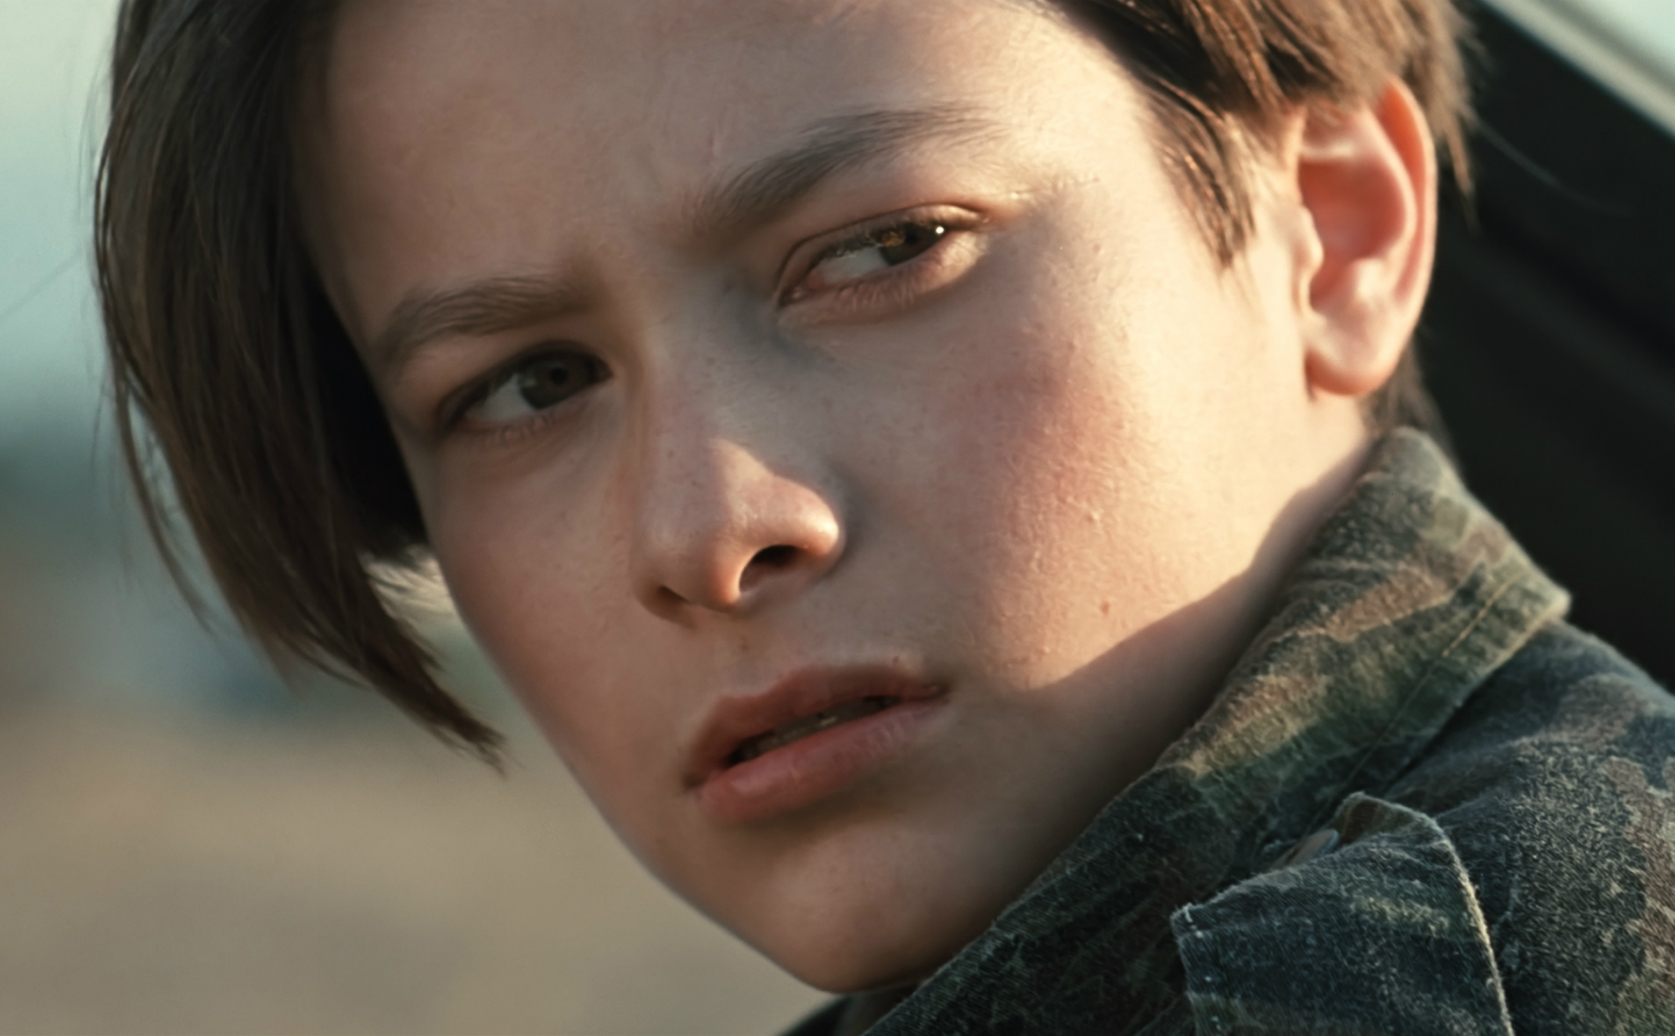 Edward Furlong: How Starring In T2 Led To A Horrible Fate